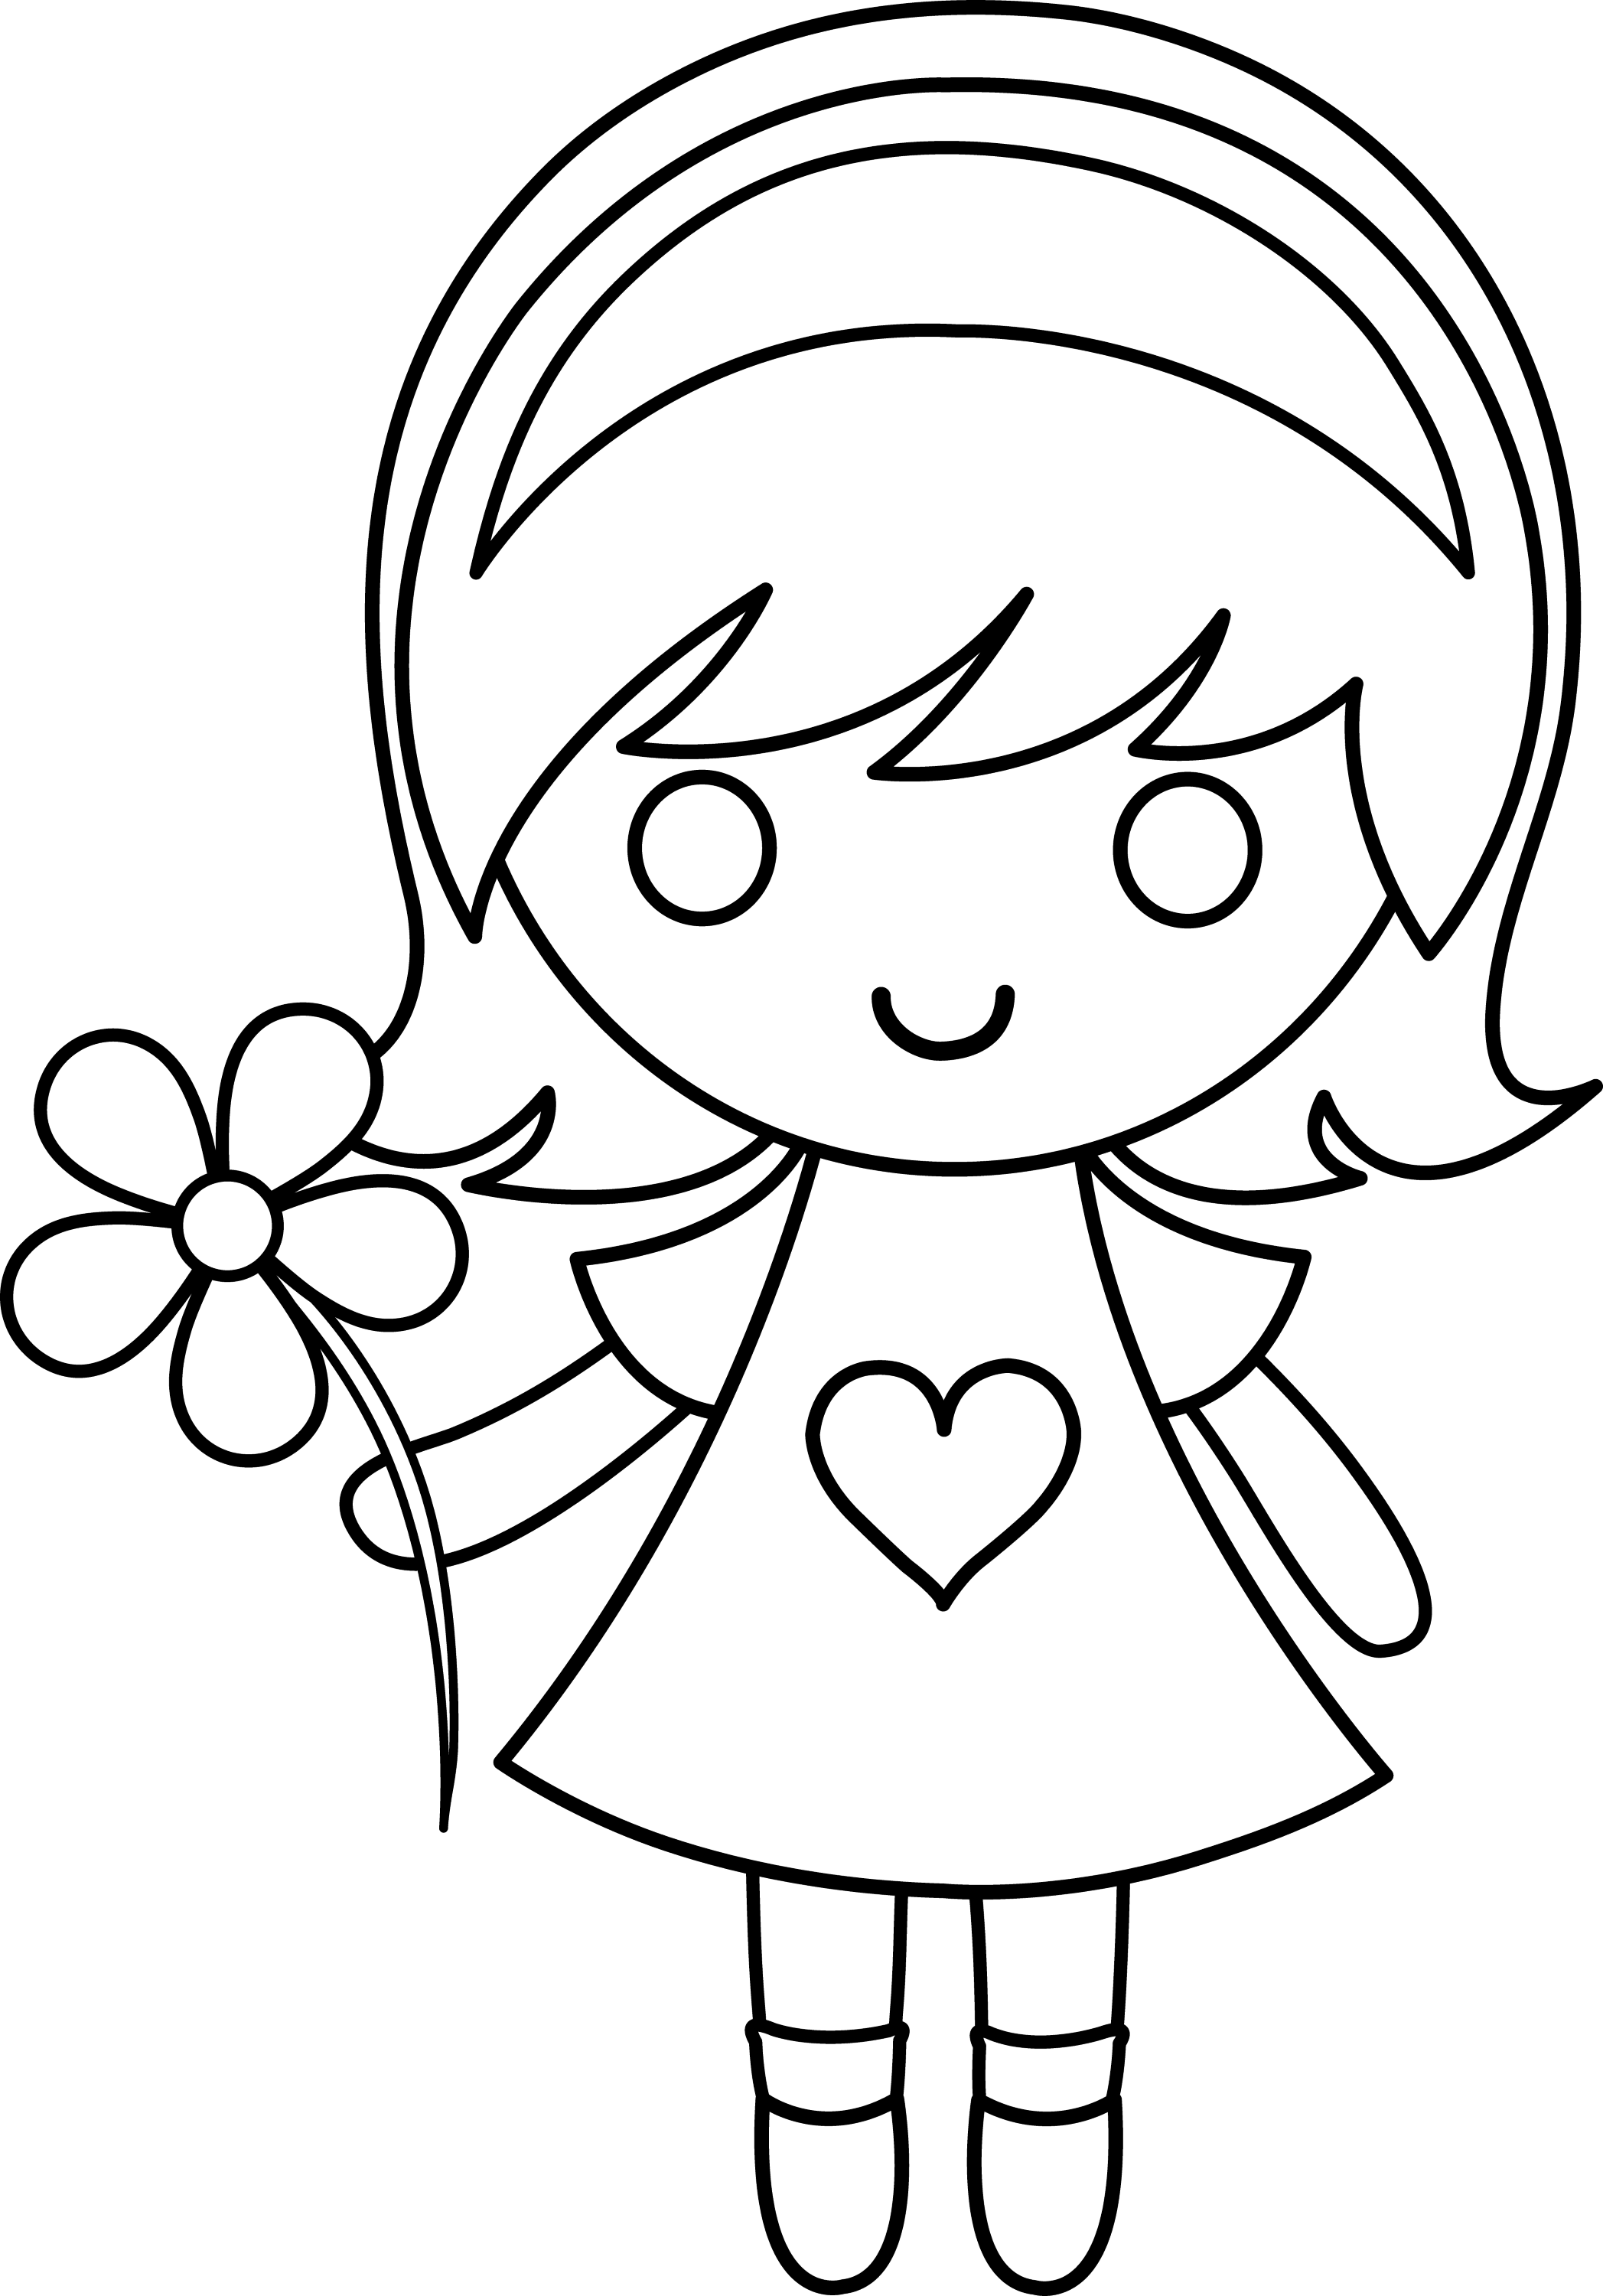 Line Drawing Girl : Daisy girl colorable line art free clip